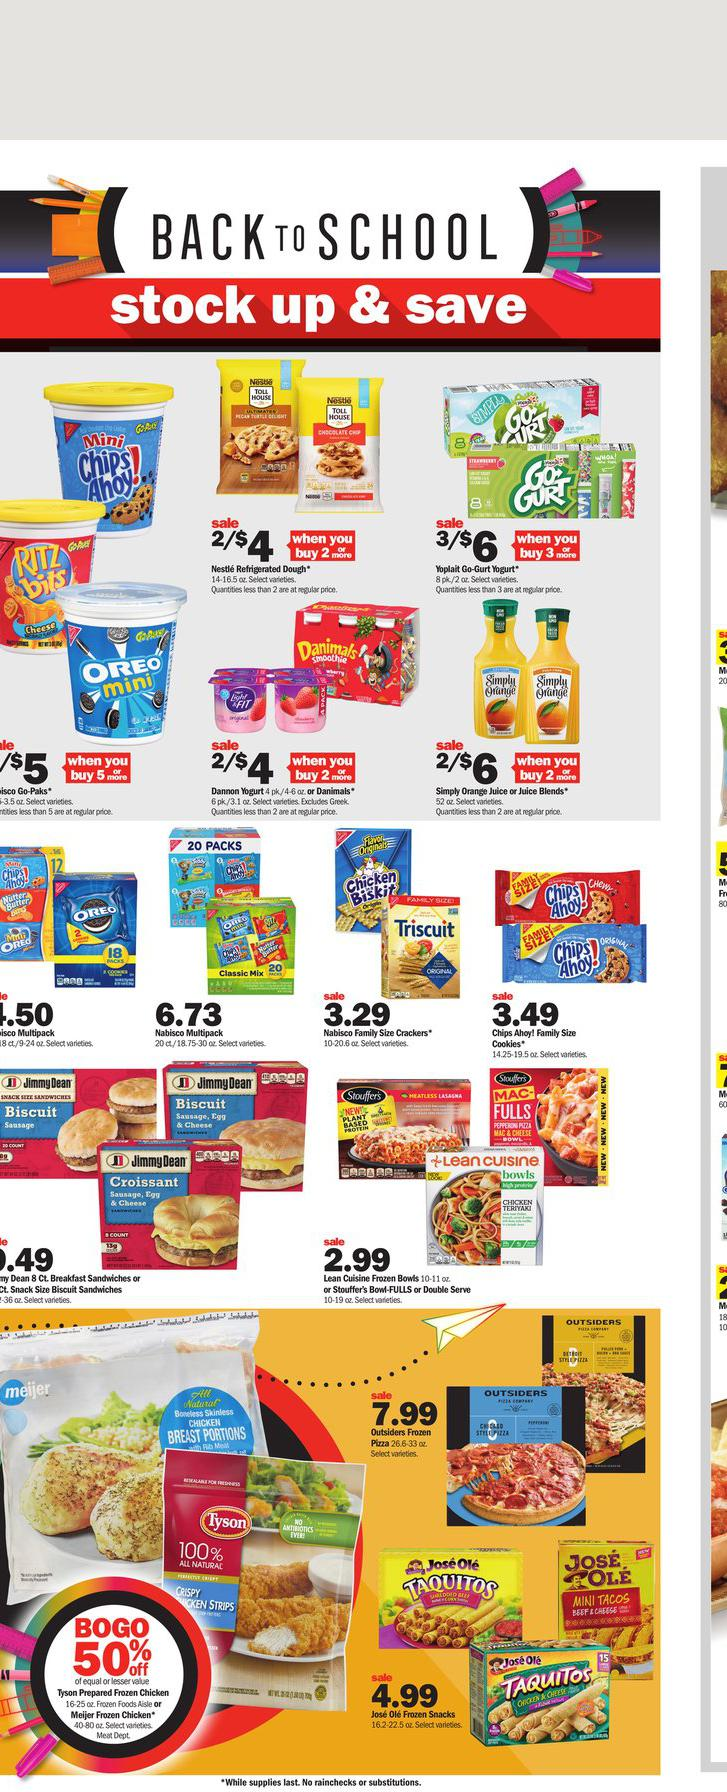 01.08.2021 Meijer ad 9. page